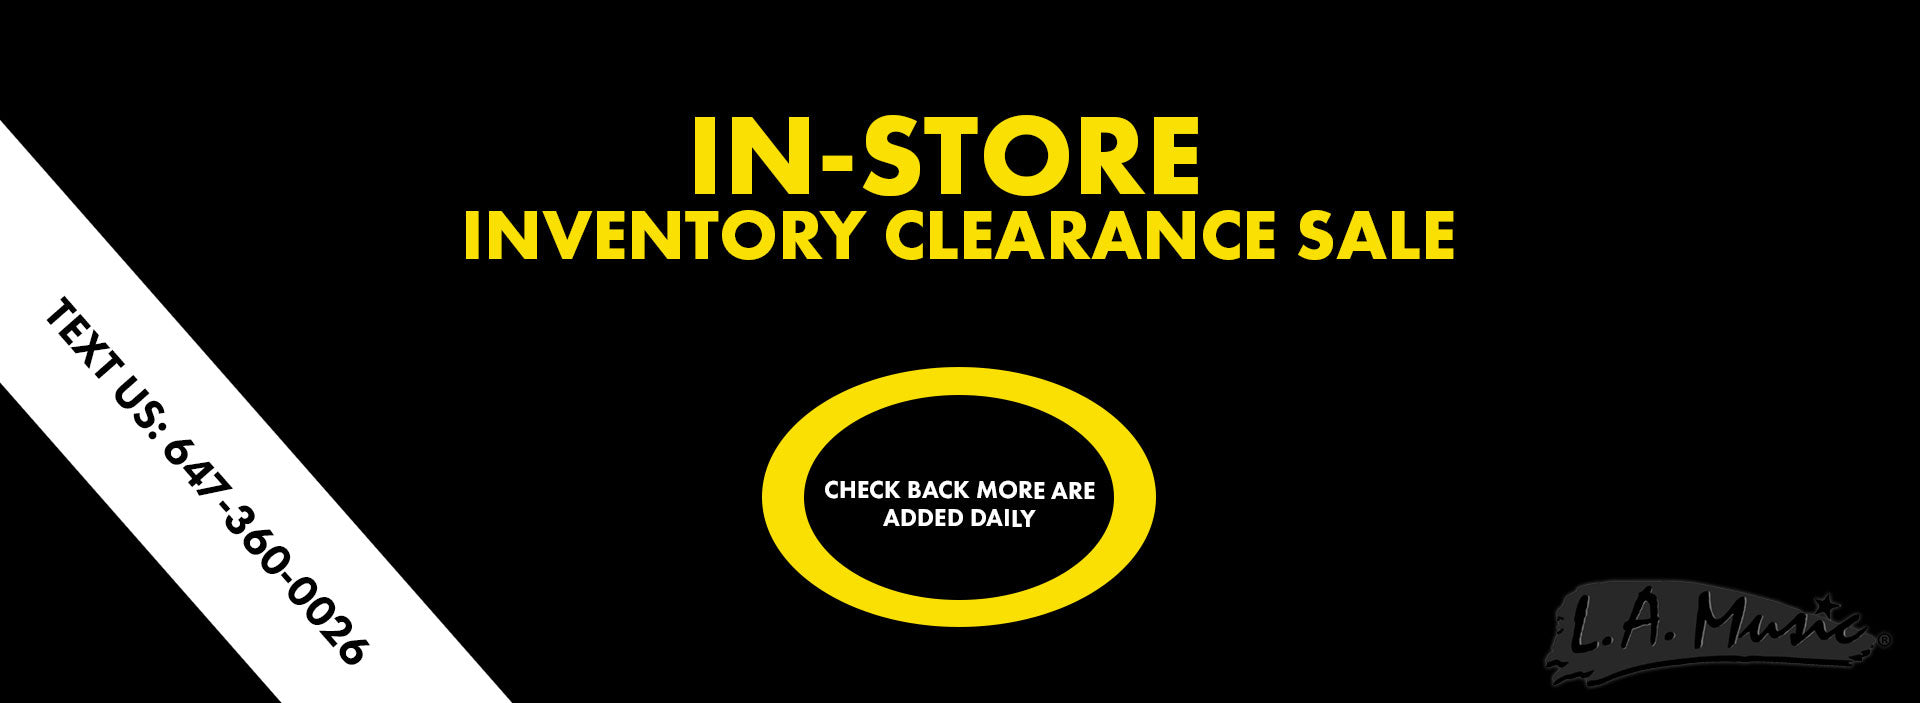 In-store Inventory Clearance Sale